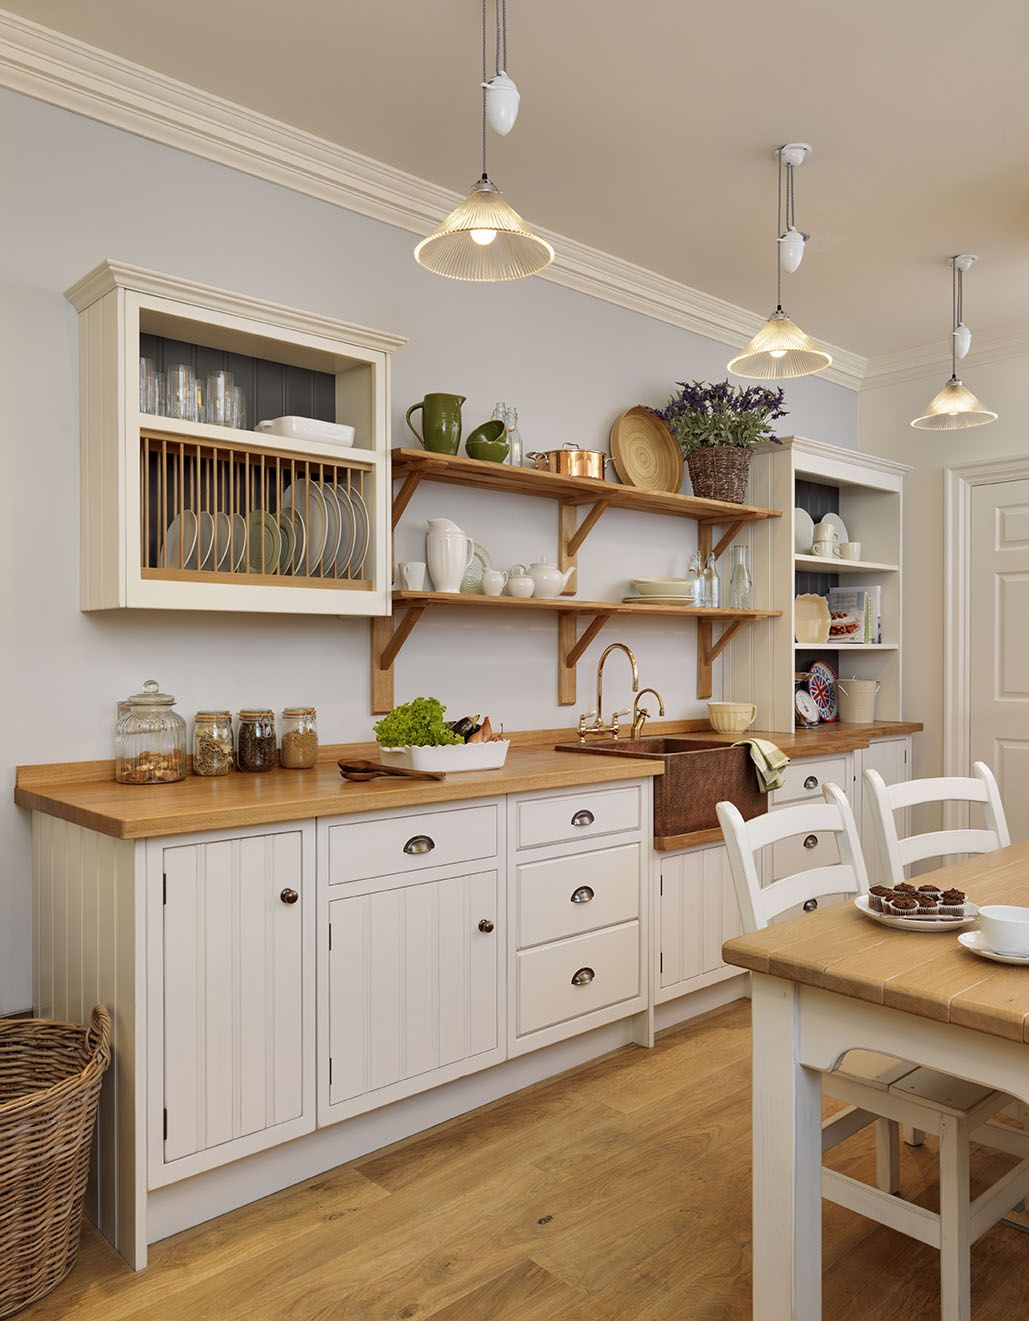 Cabinets!!! English Cottage Kitchen Rustic Painted White With A